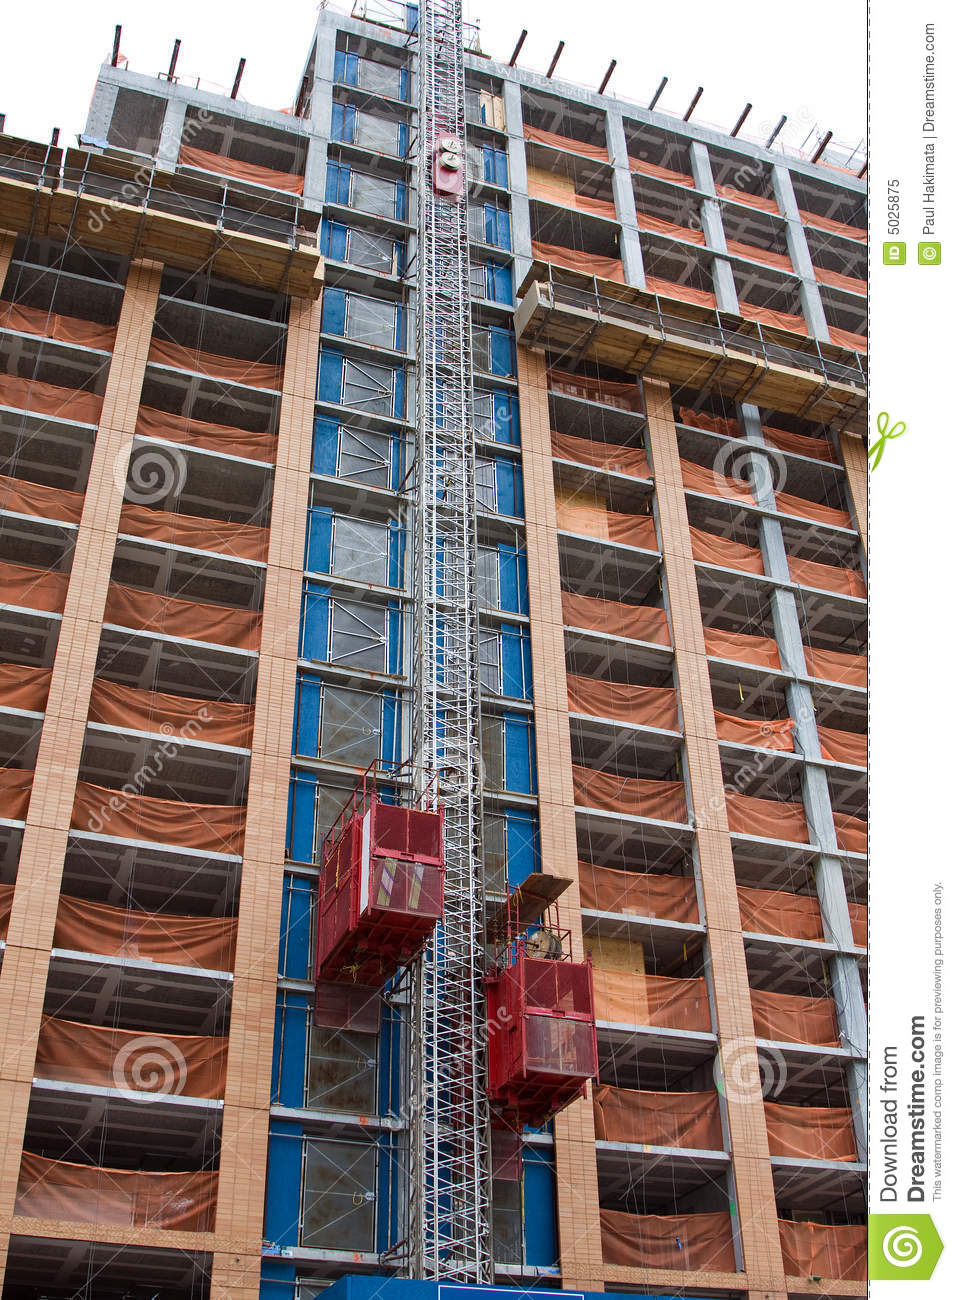 Where to buy construction elevators 99